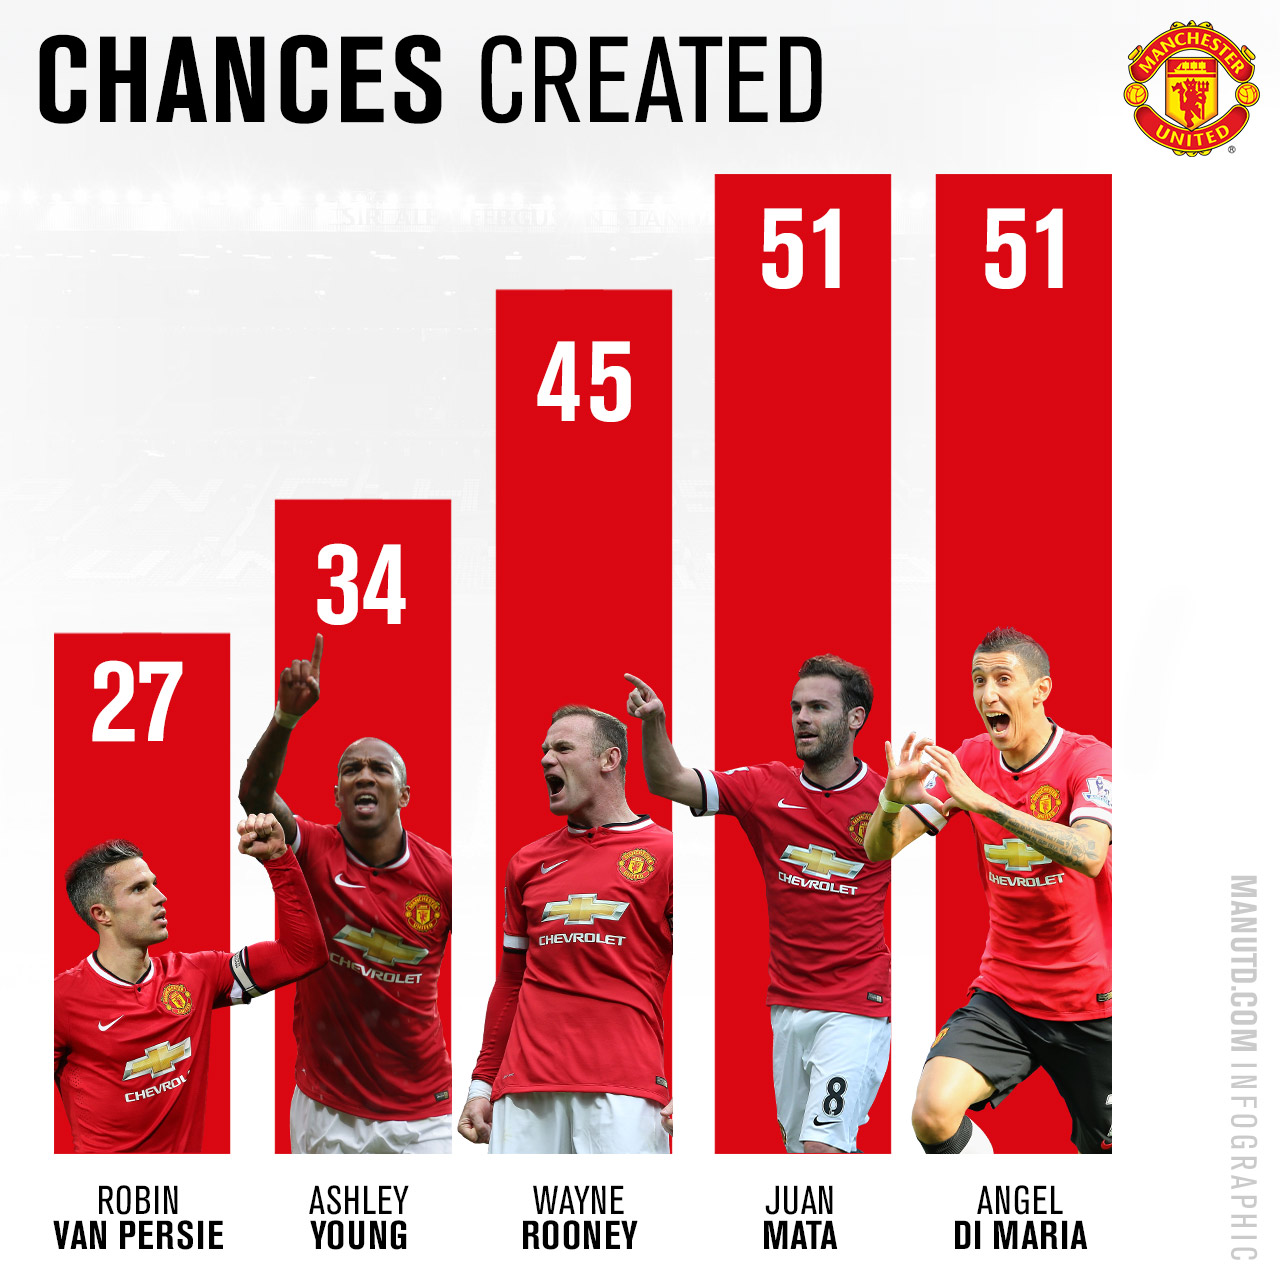 STATS: United's most creative player